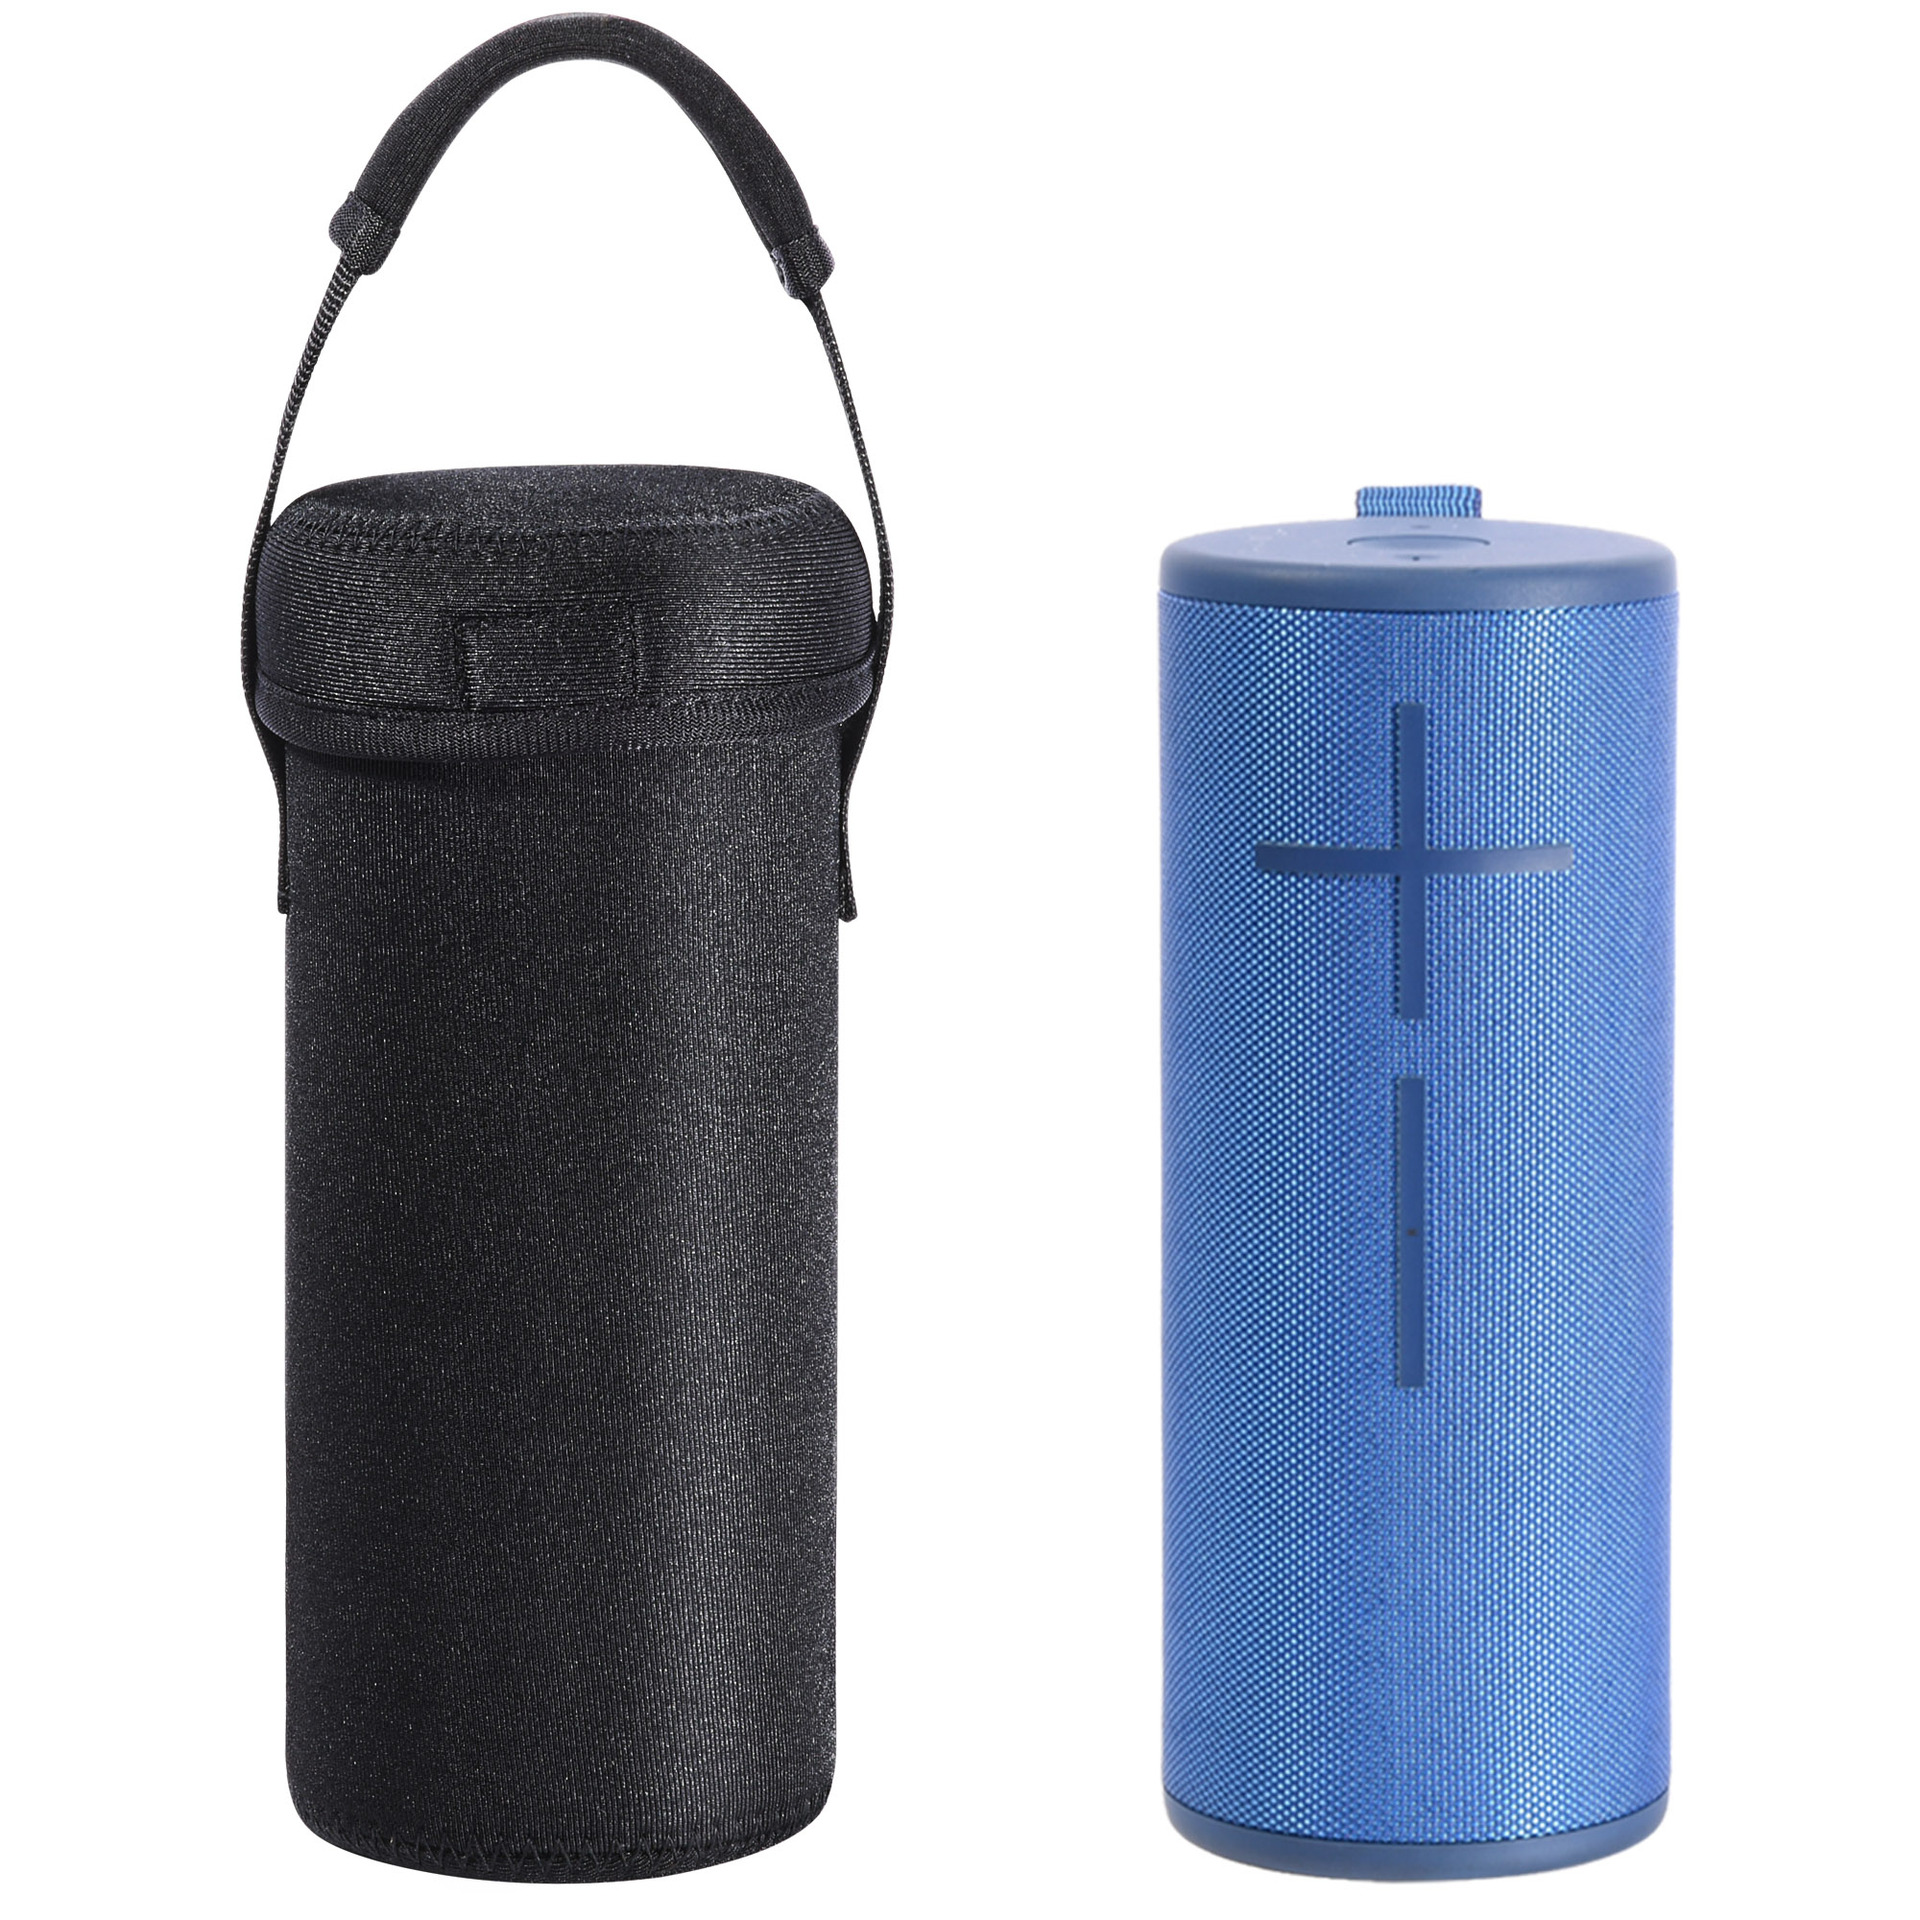 Portable Speaker Case For UE Boom 3 For UE Megaboom 3 Outdoor Carrying Thick Protective Bag Pouch